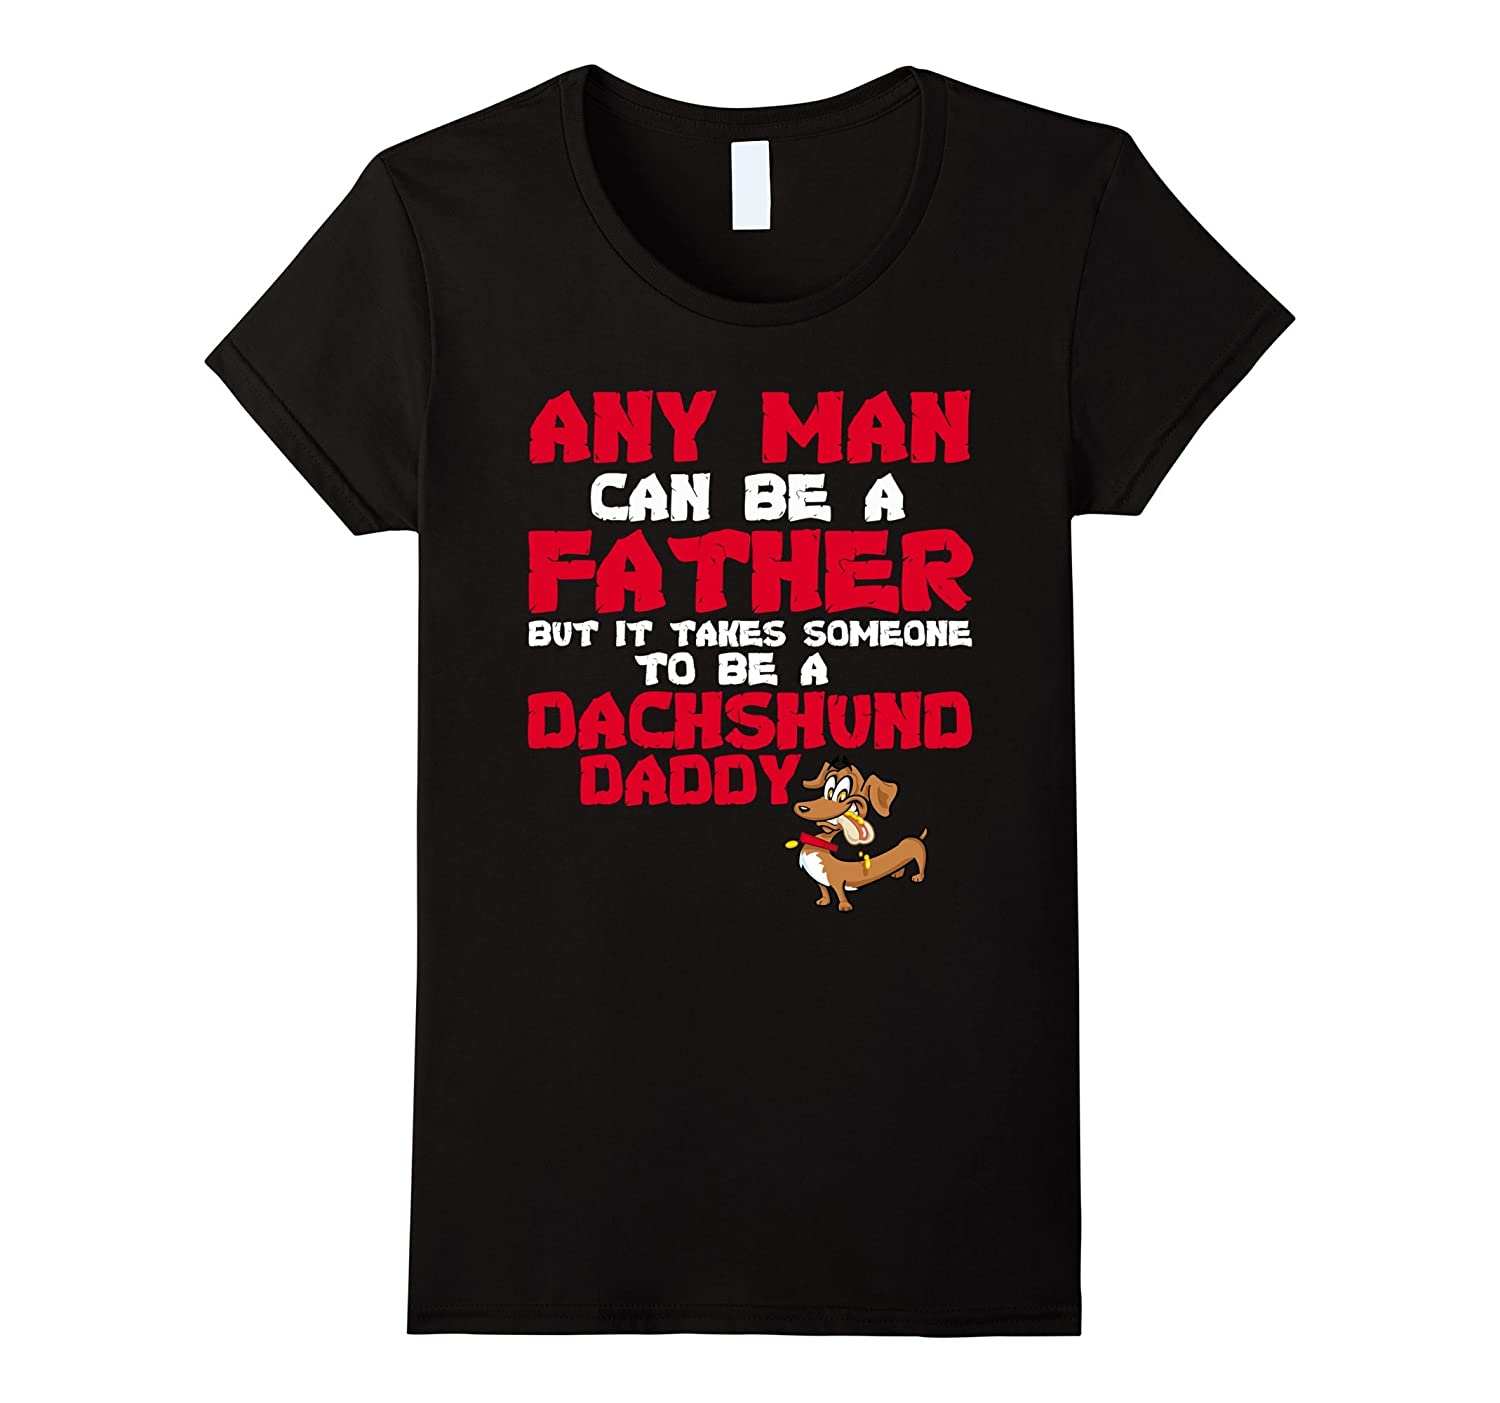 Any man can be a father Dachshund Daddy Funny Love Shirts